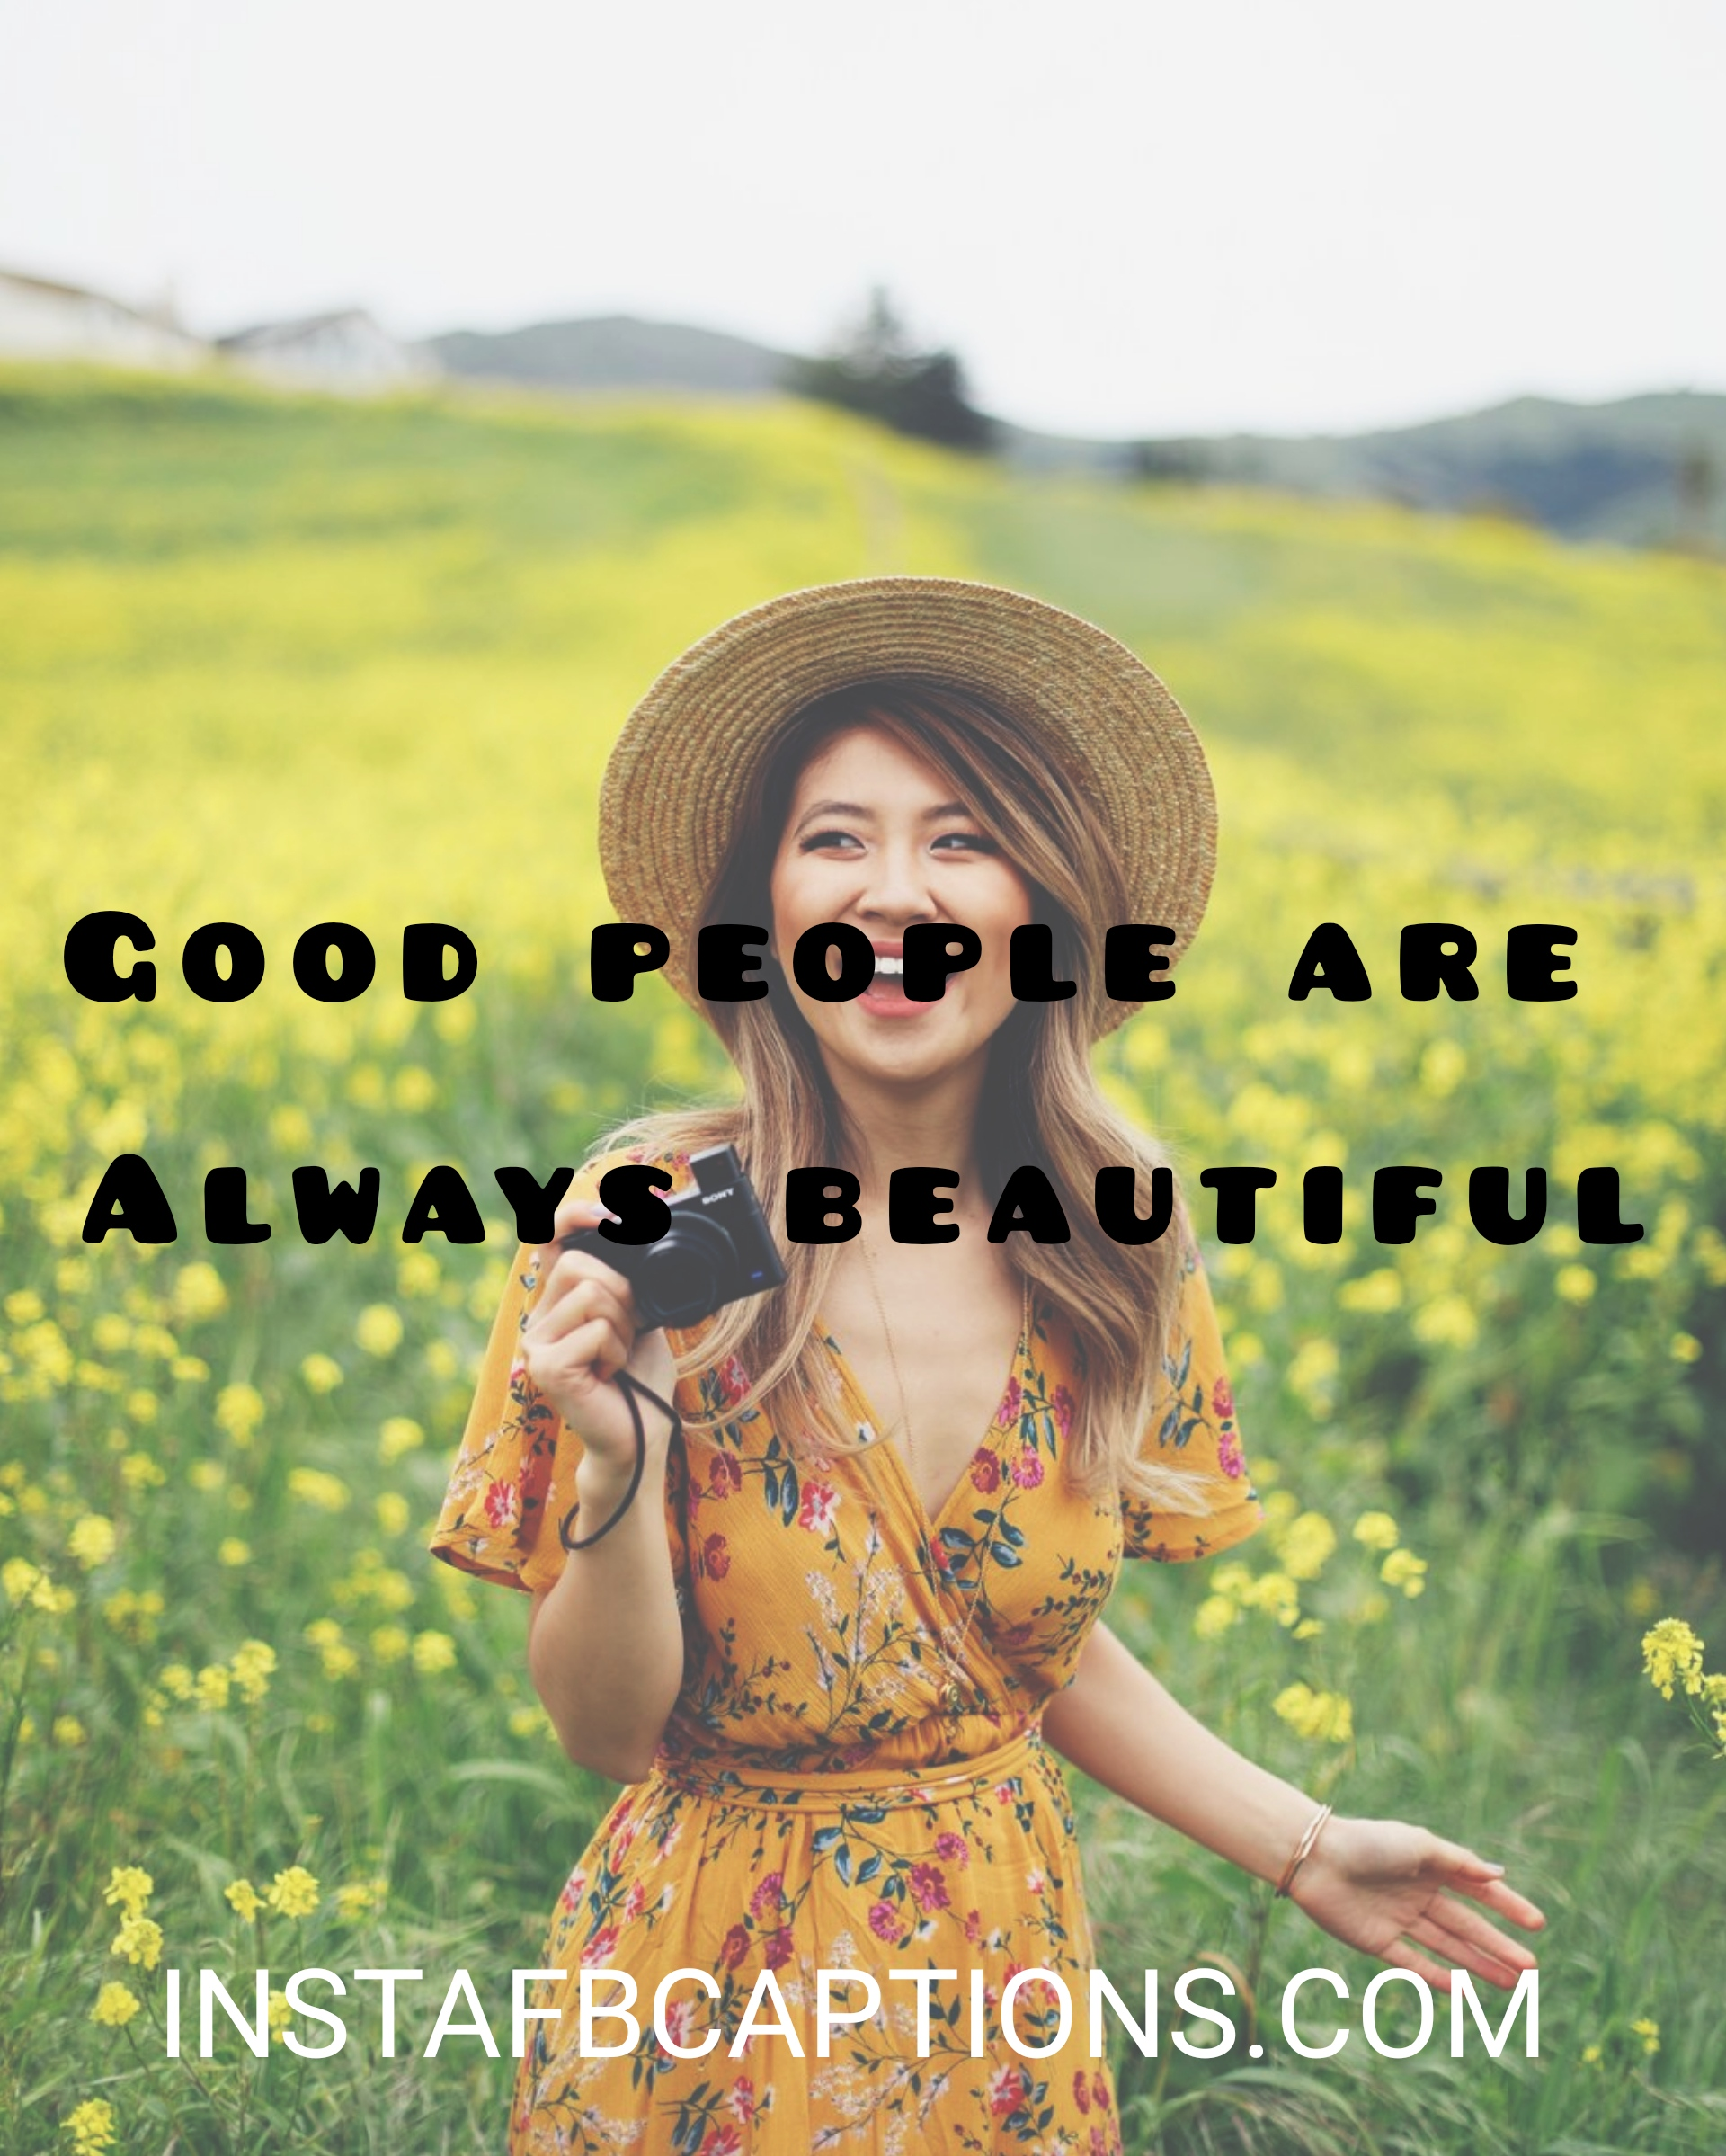 Good People Are Always Beautiful  - Good people are always beautiful - Standing pose captions|(side look attitude model)